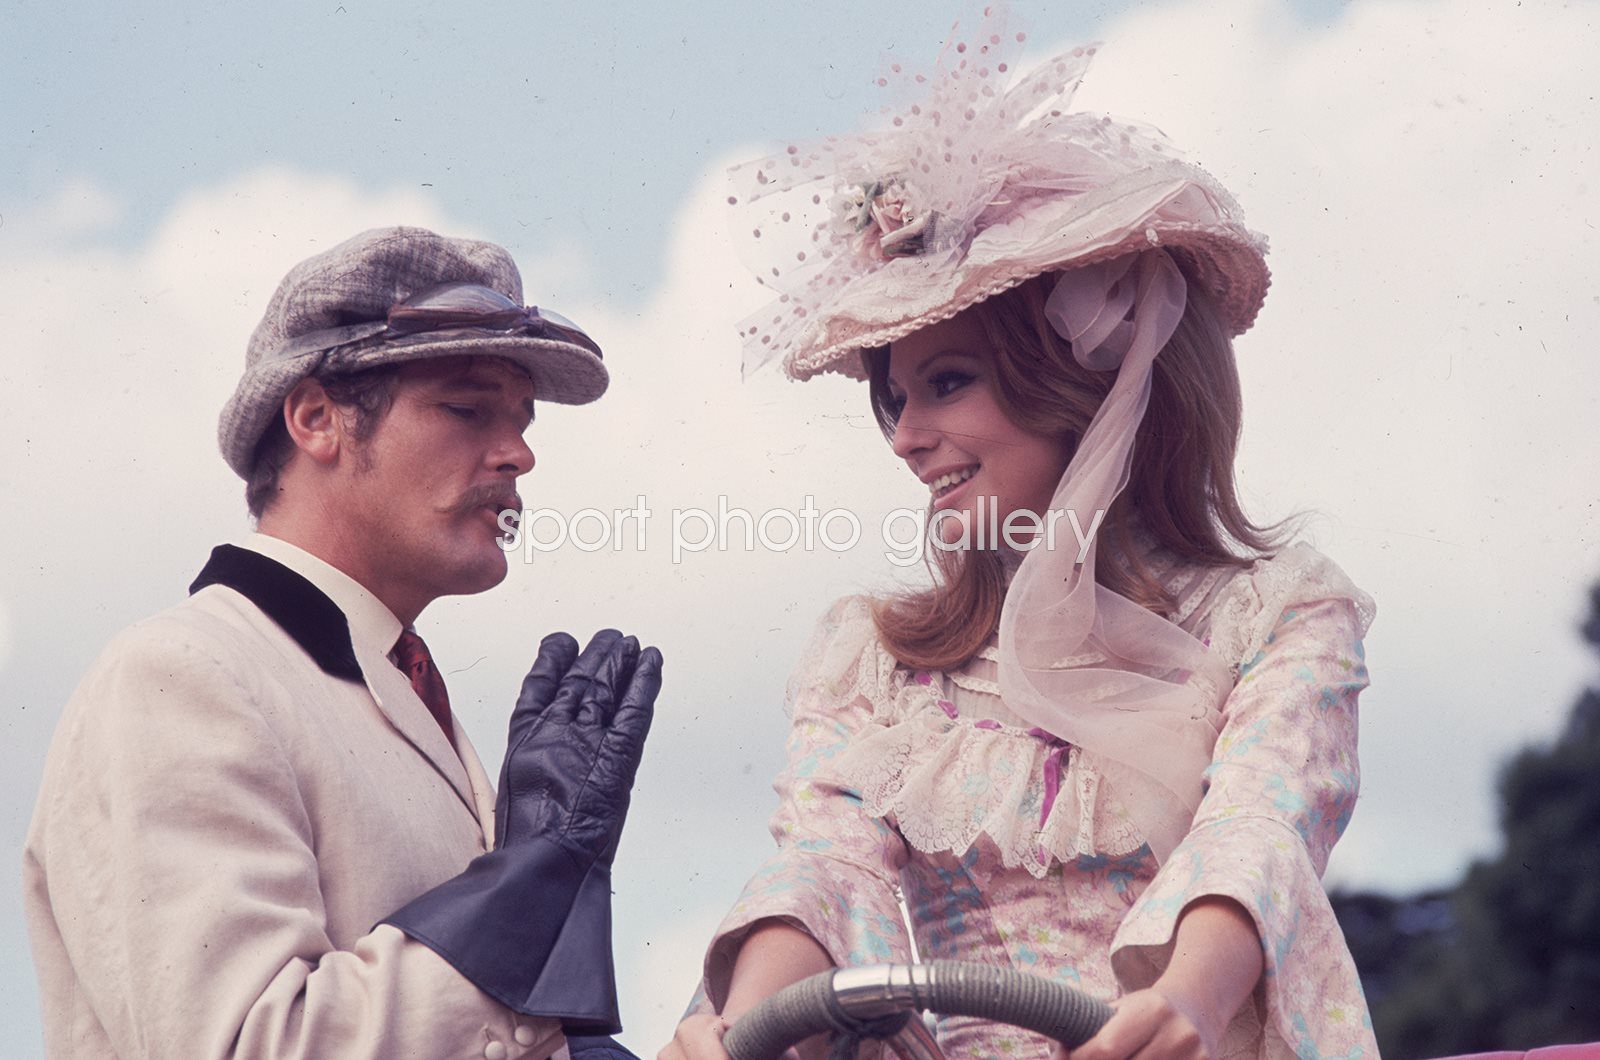 Roger Moore Crossplot Filming at Woburn Abbey 1968